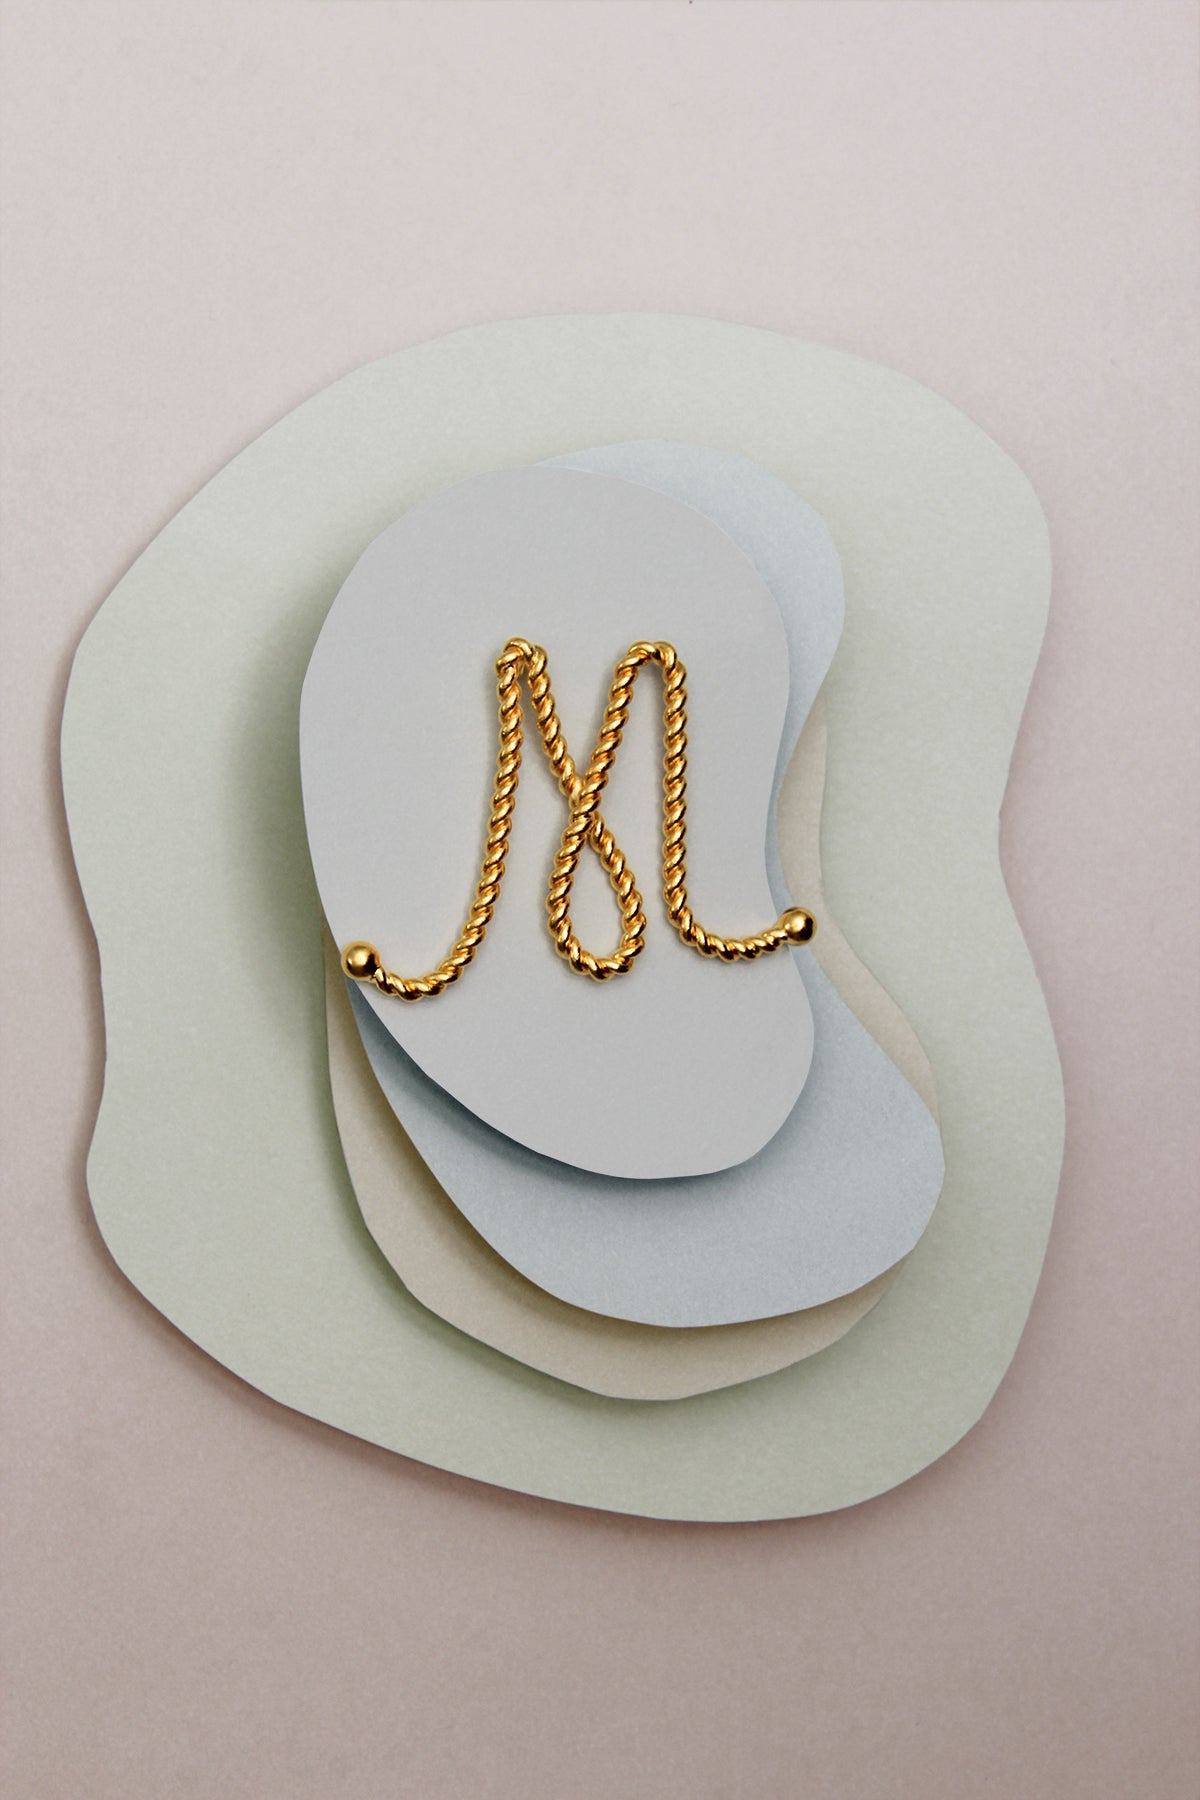 THE INITIAL M NECKLACE